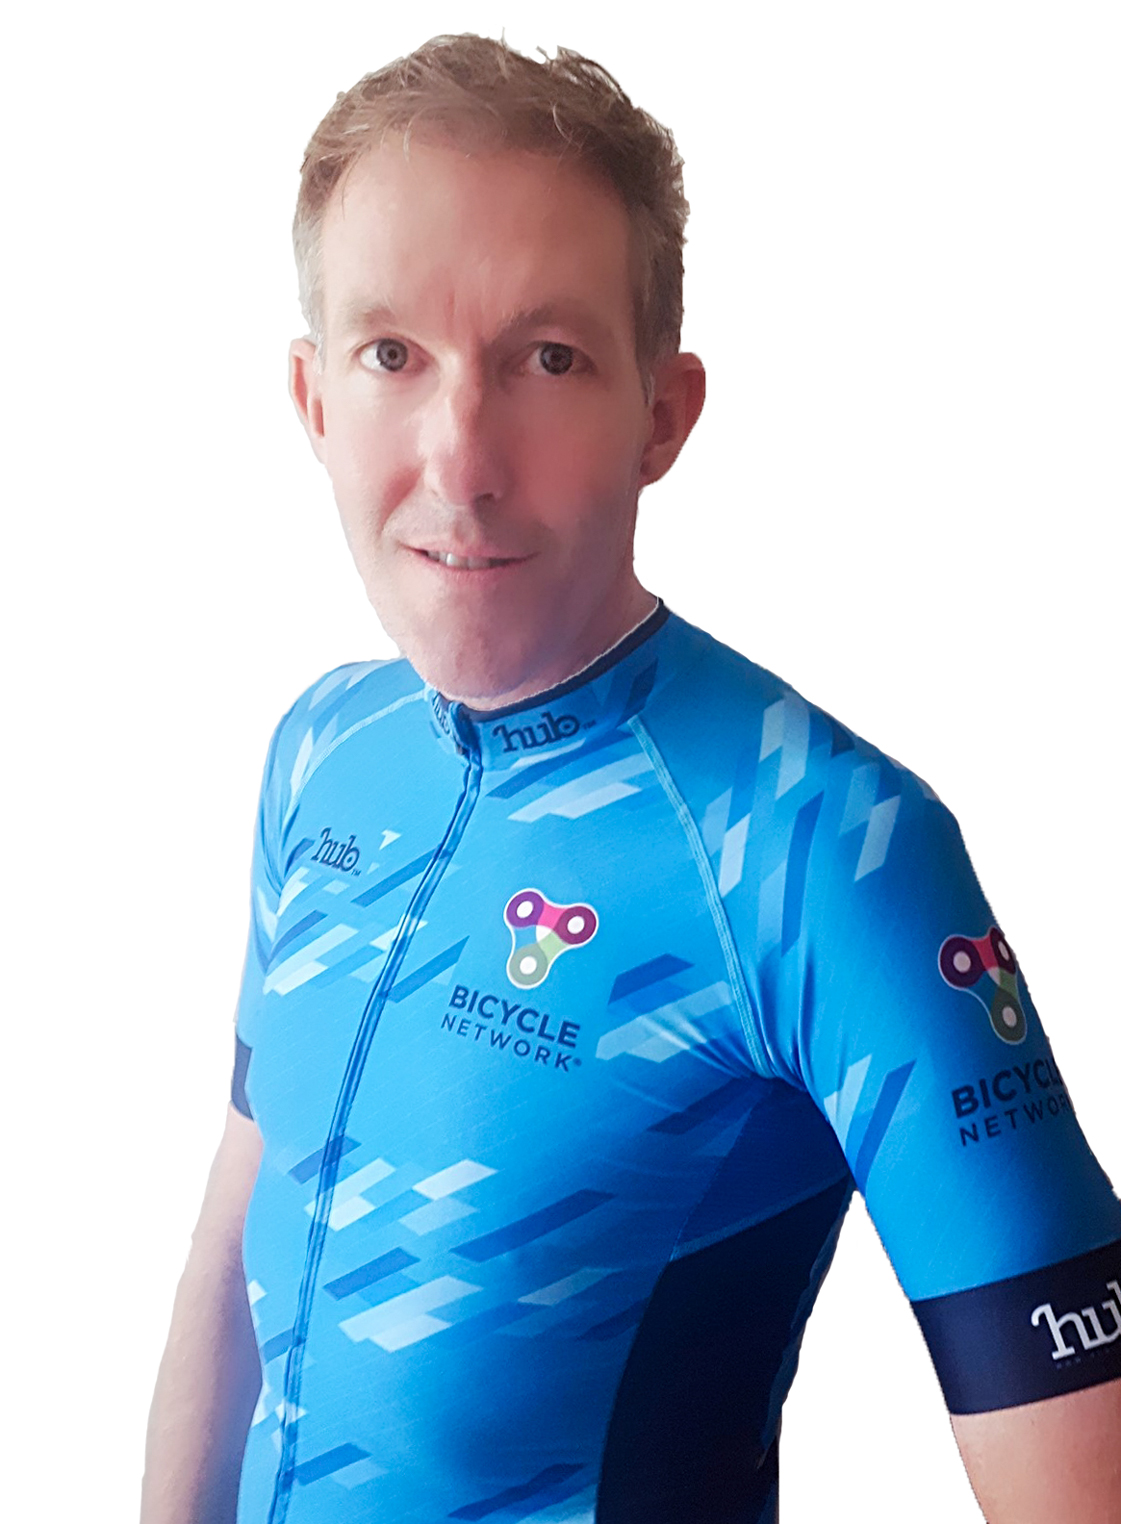 Team Bicycle Network rider Keith Leonard